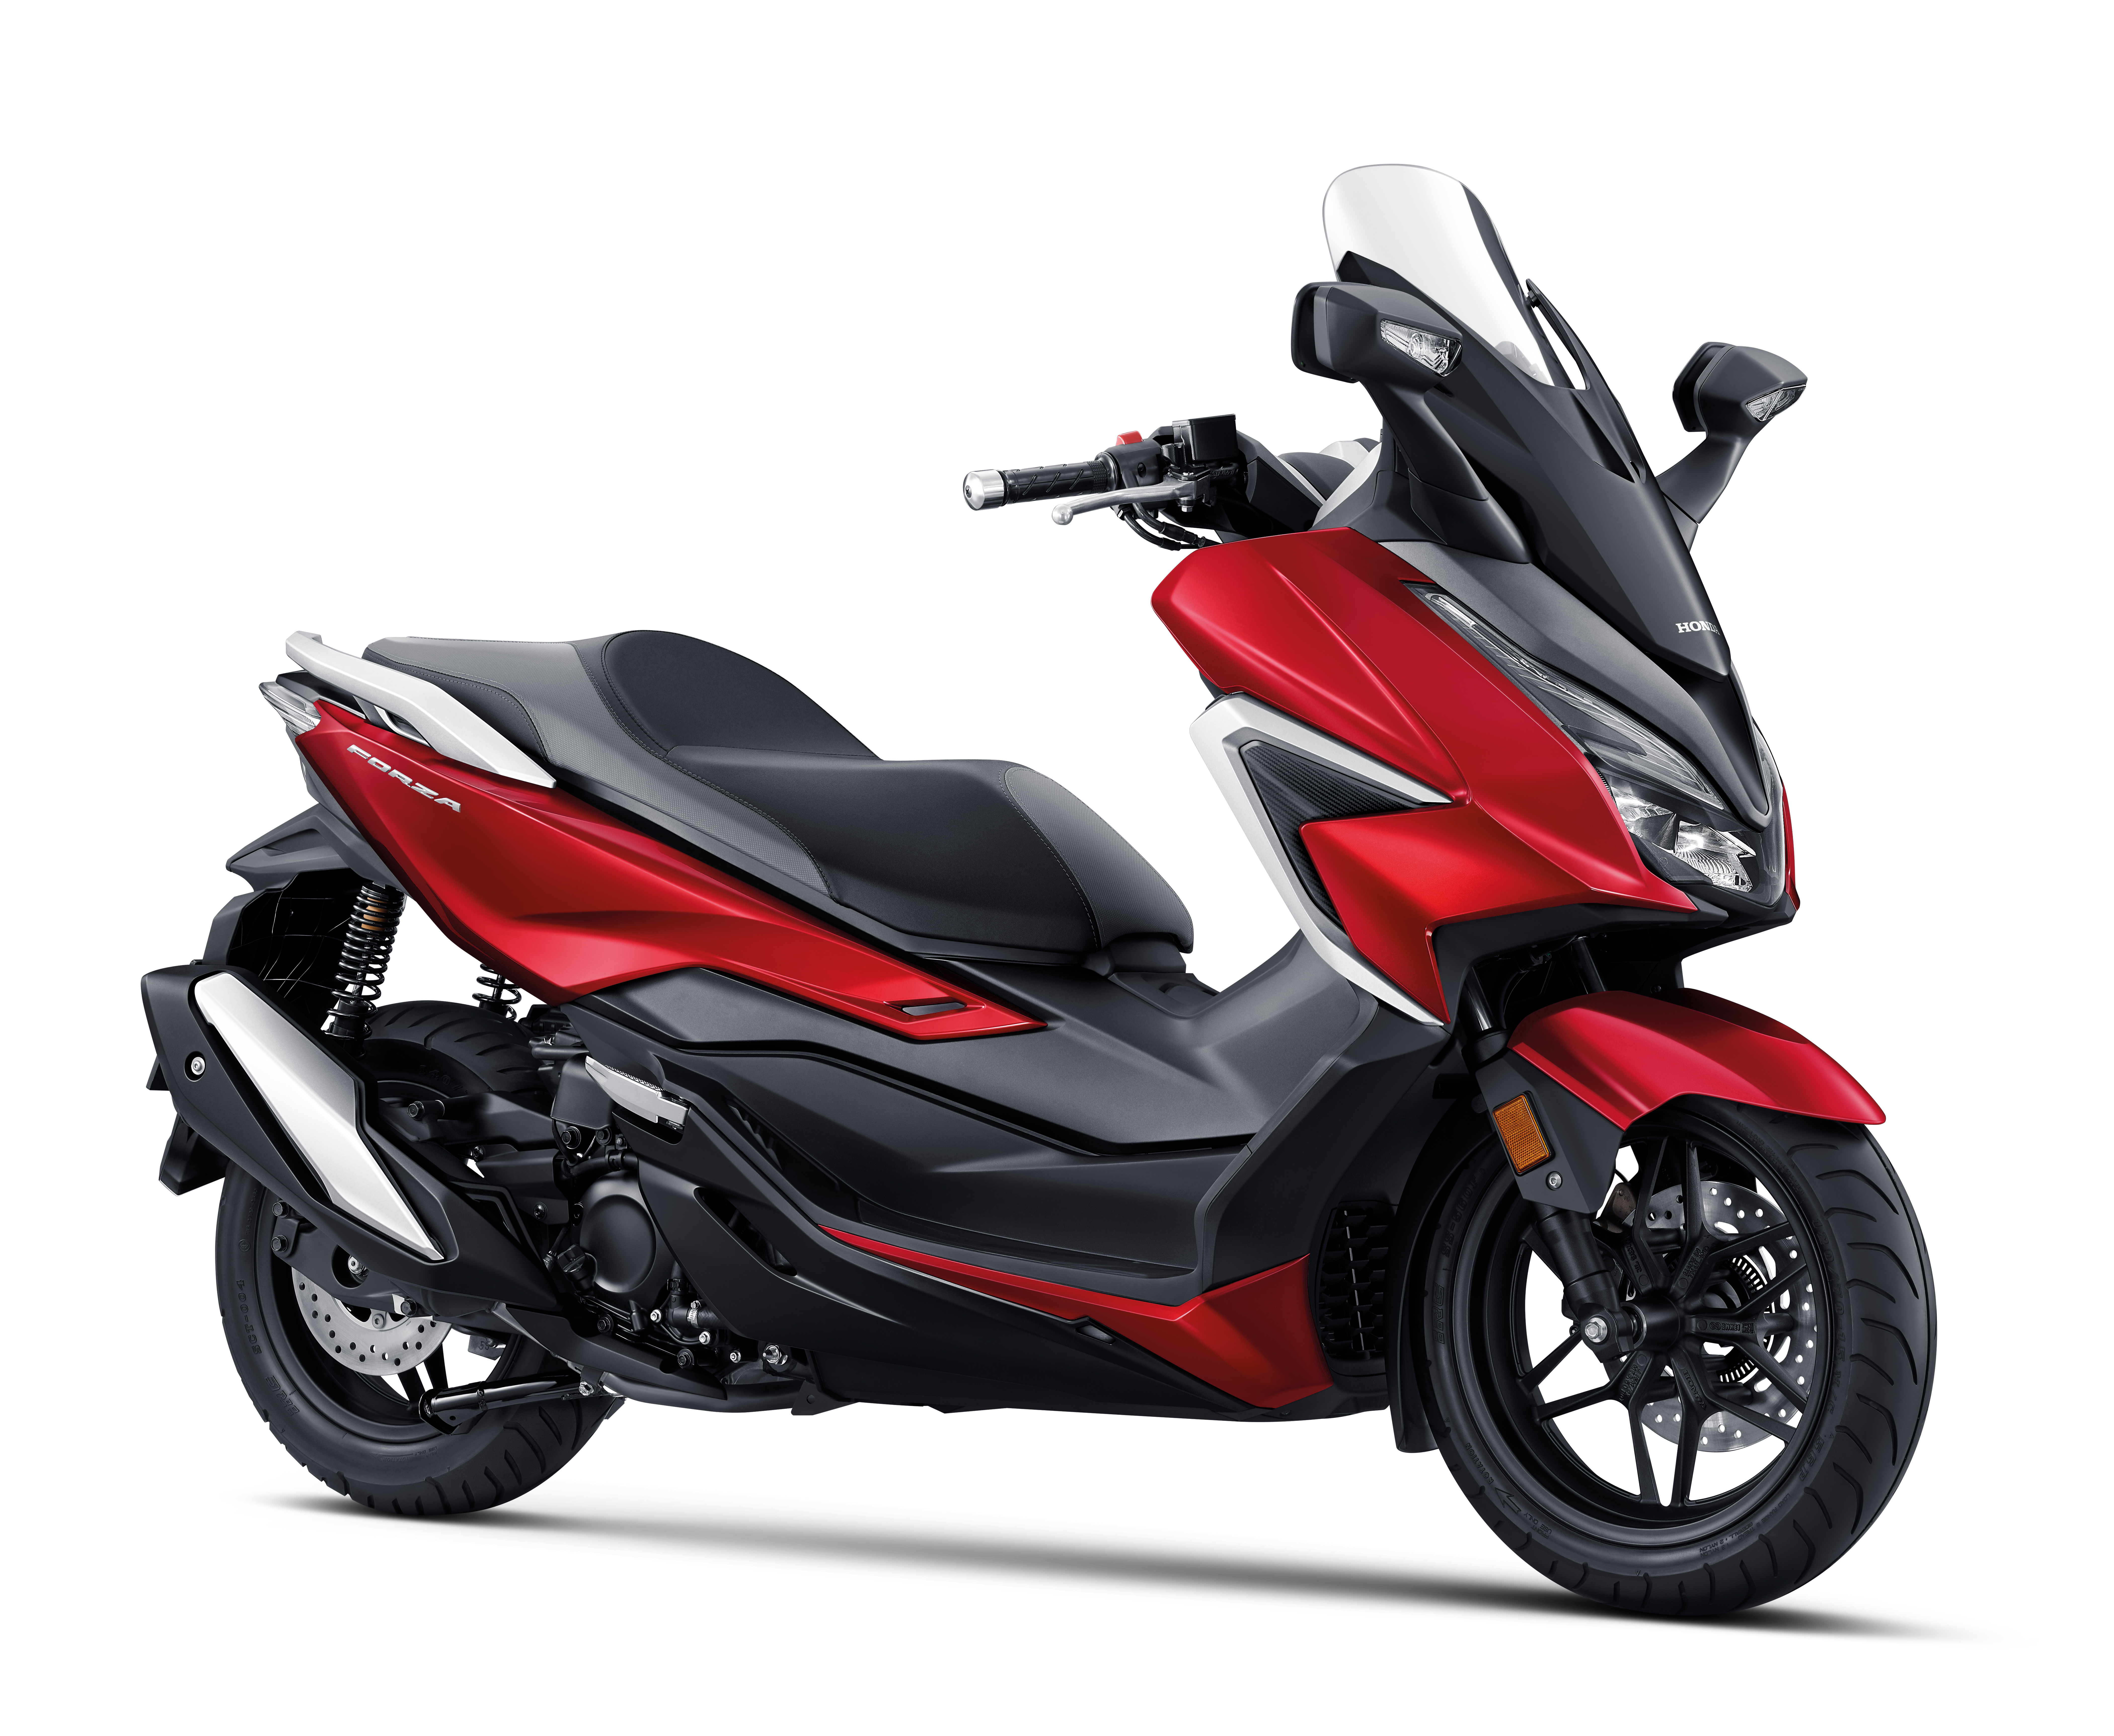 2021 Honda Forza 250 scooter in Malaysia – RM25,388 Image #1265502